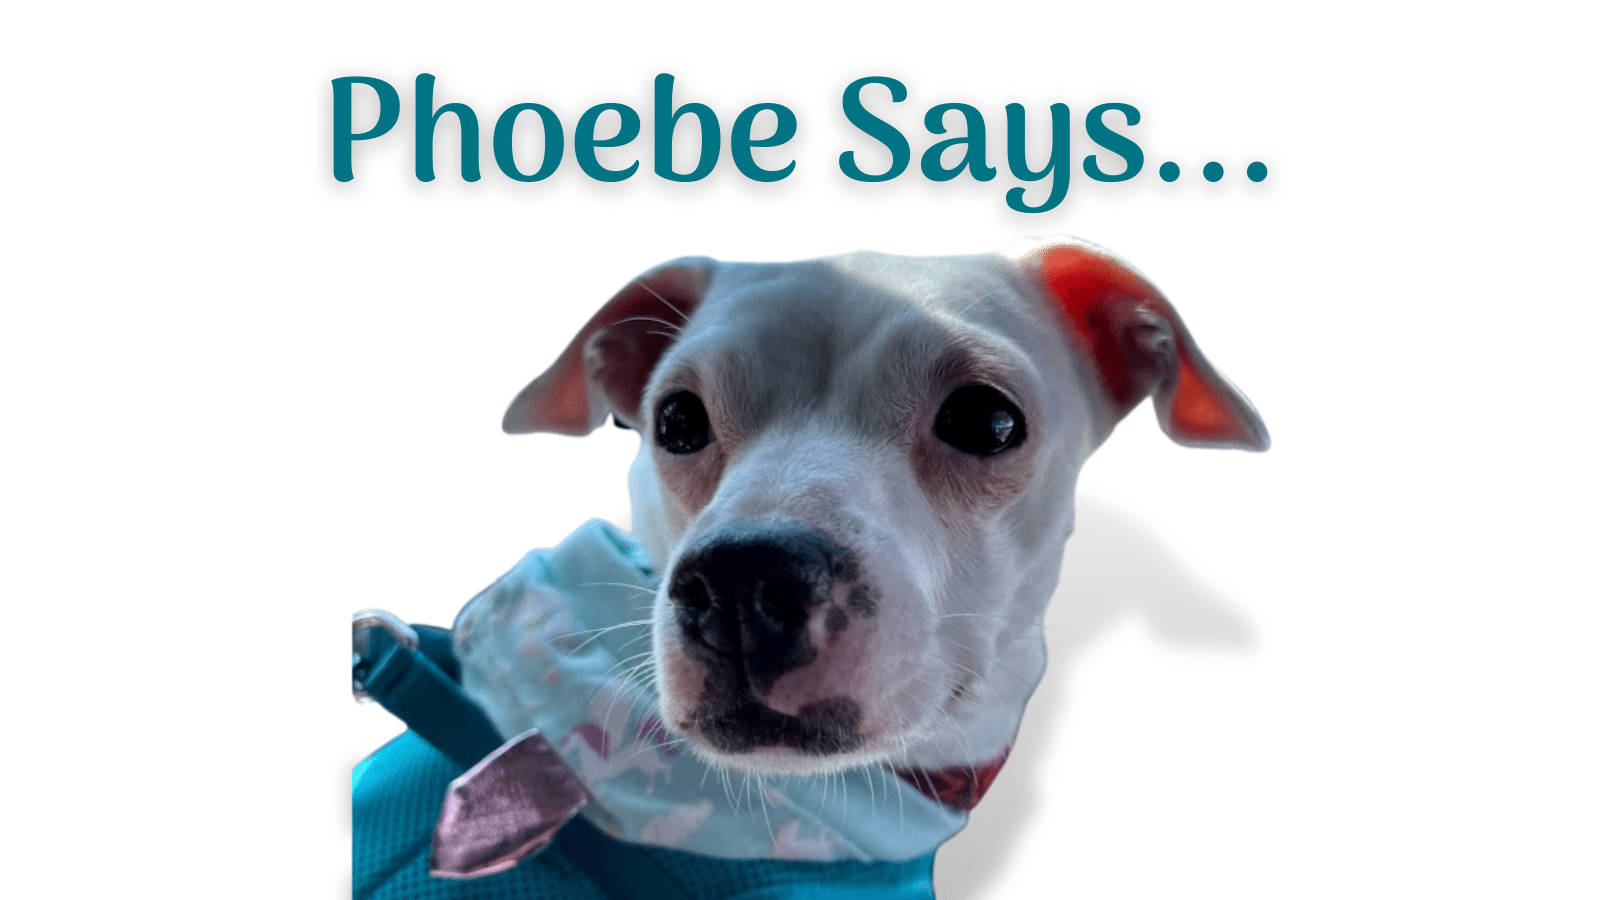 Phoebe Says … Focus On Quality Content